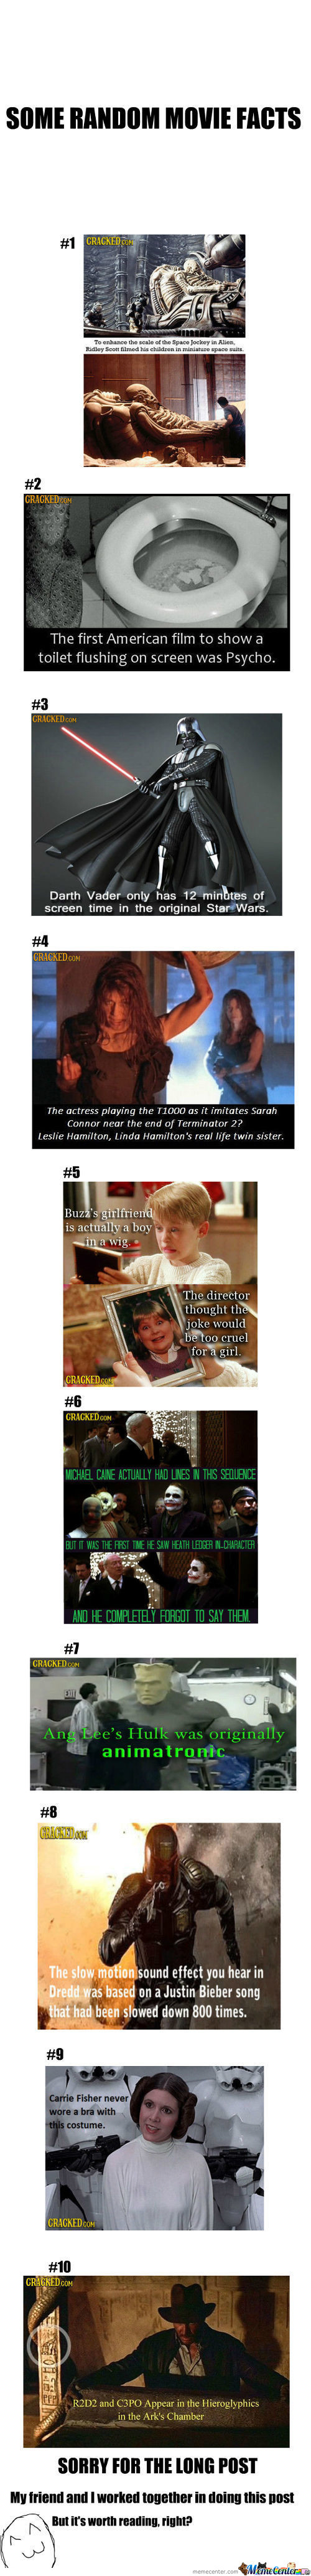 Some Random Movie Facts(Sorry For The Long Post)